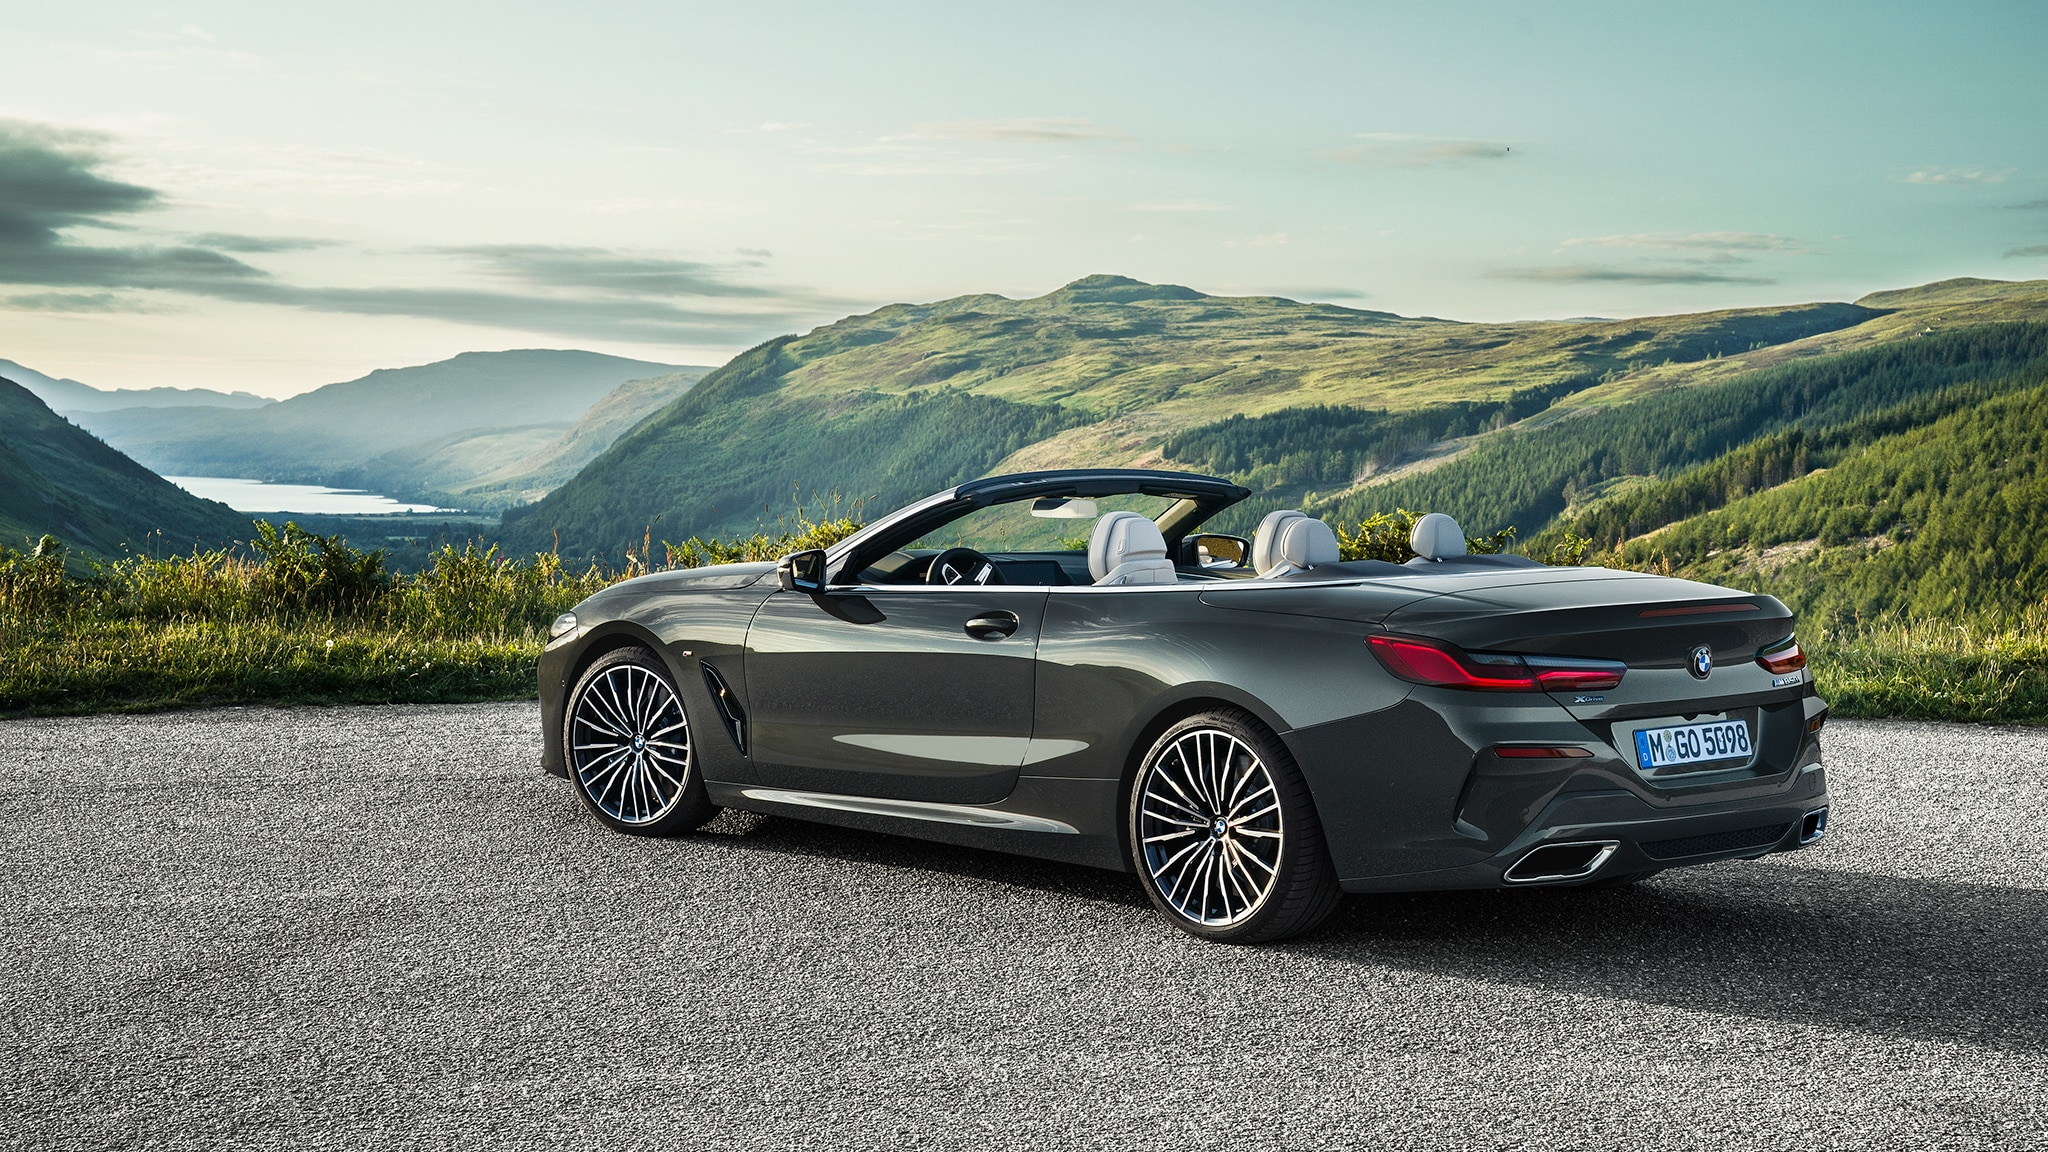 2019 BMW M850i Convertible Rear Side View With Mountains